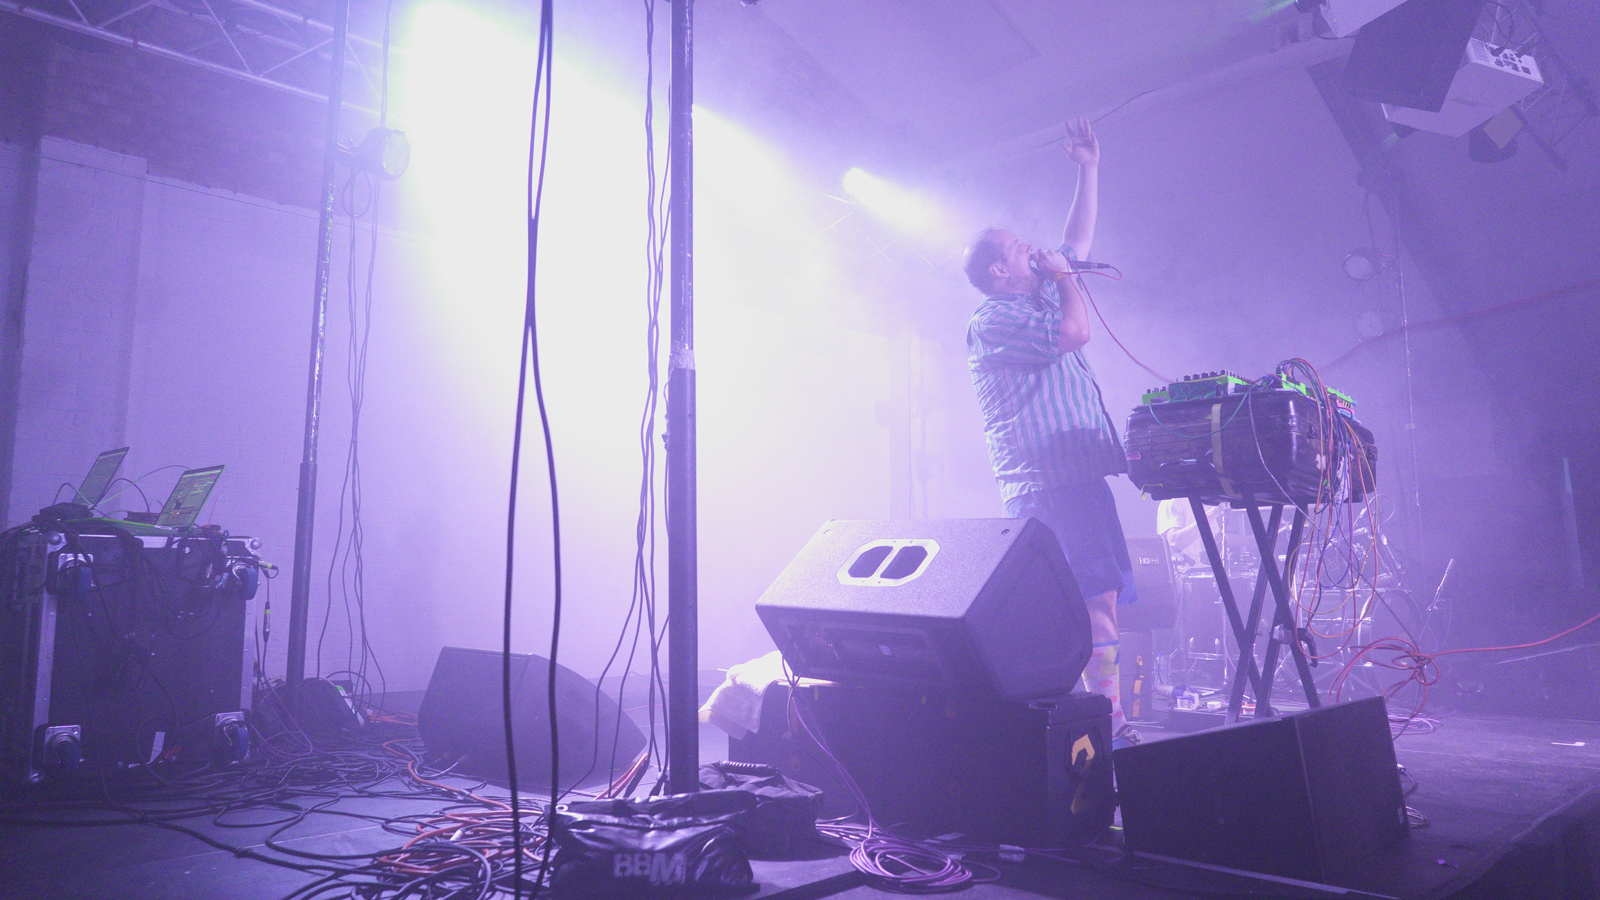 Dan Deacon live at The Oval Space. Photography: Carys Huws